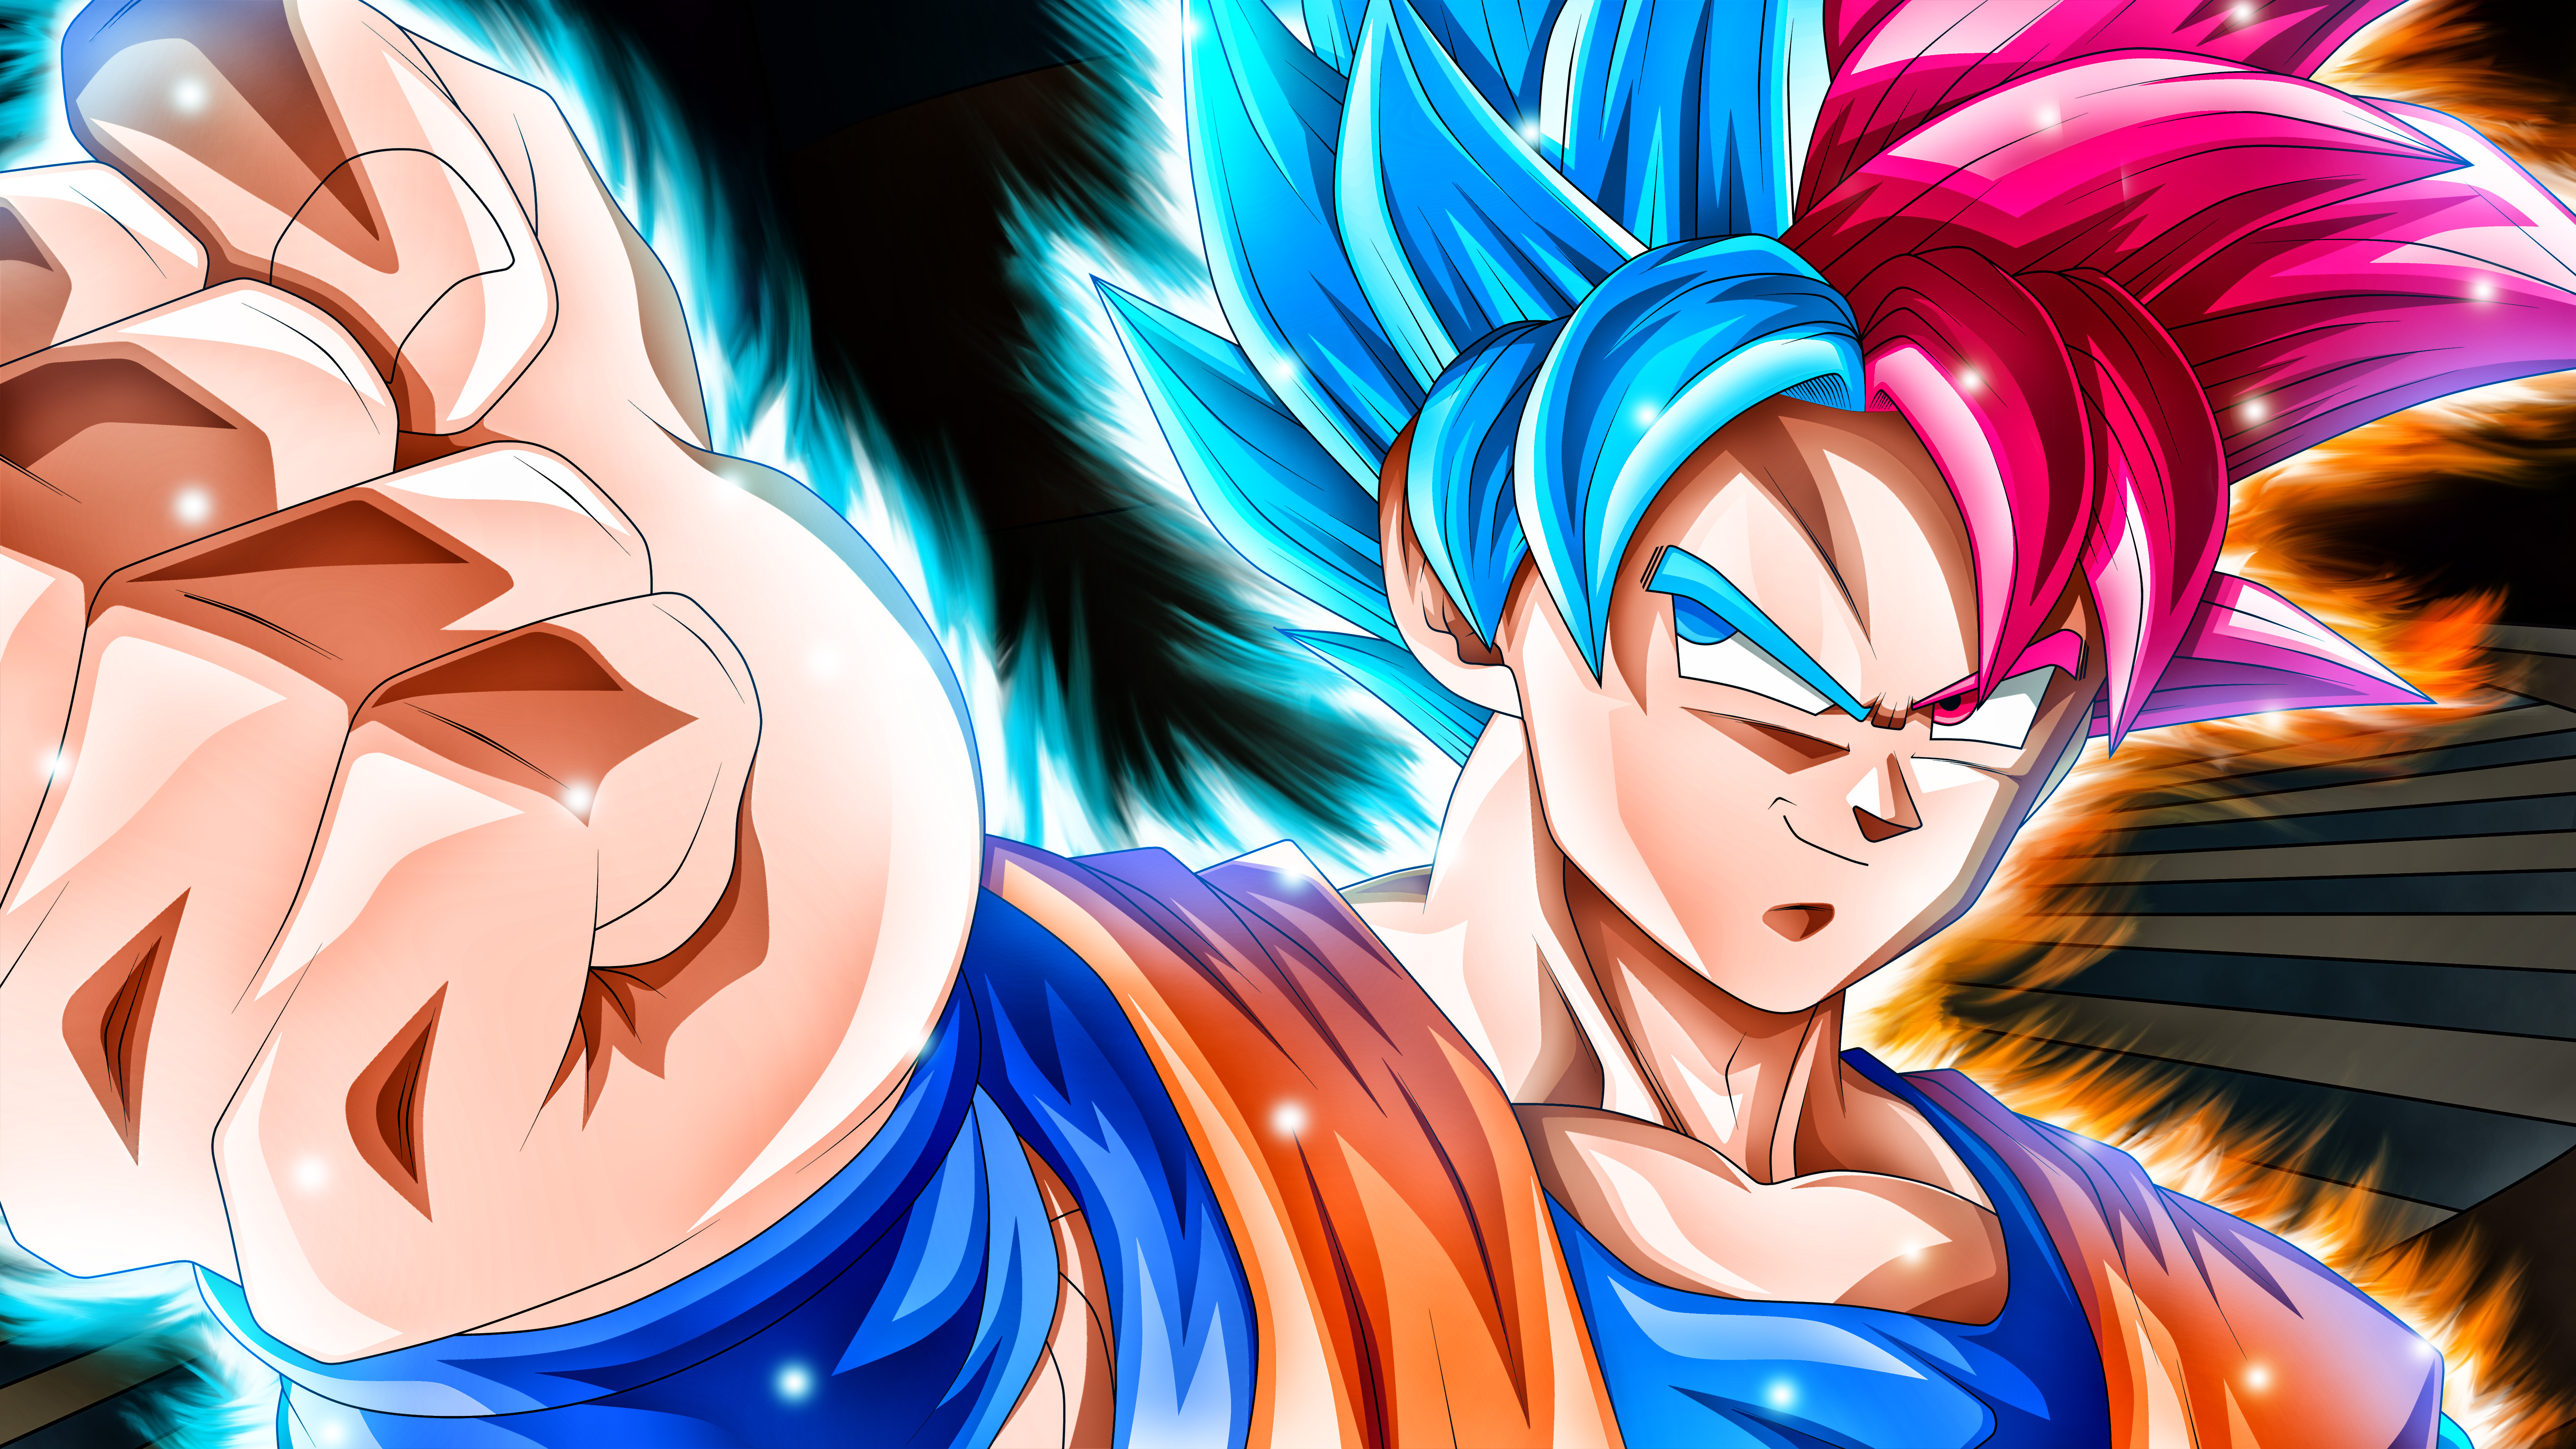 1360x768 Goku 5k Dragon Ball Super Laptop Hd Hd 4k Wallpapers Images Backgrounds Photos And Pictures